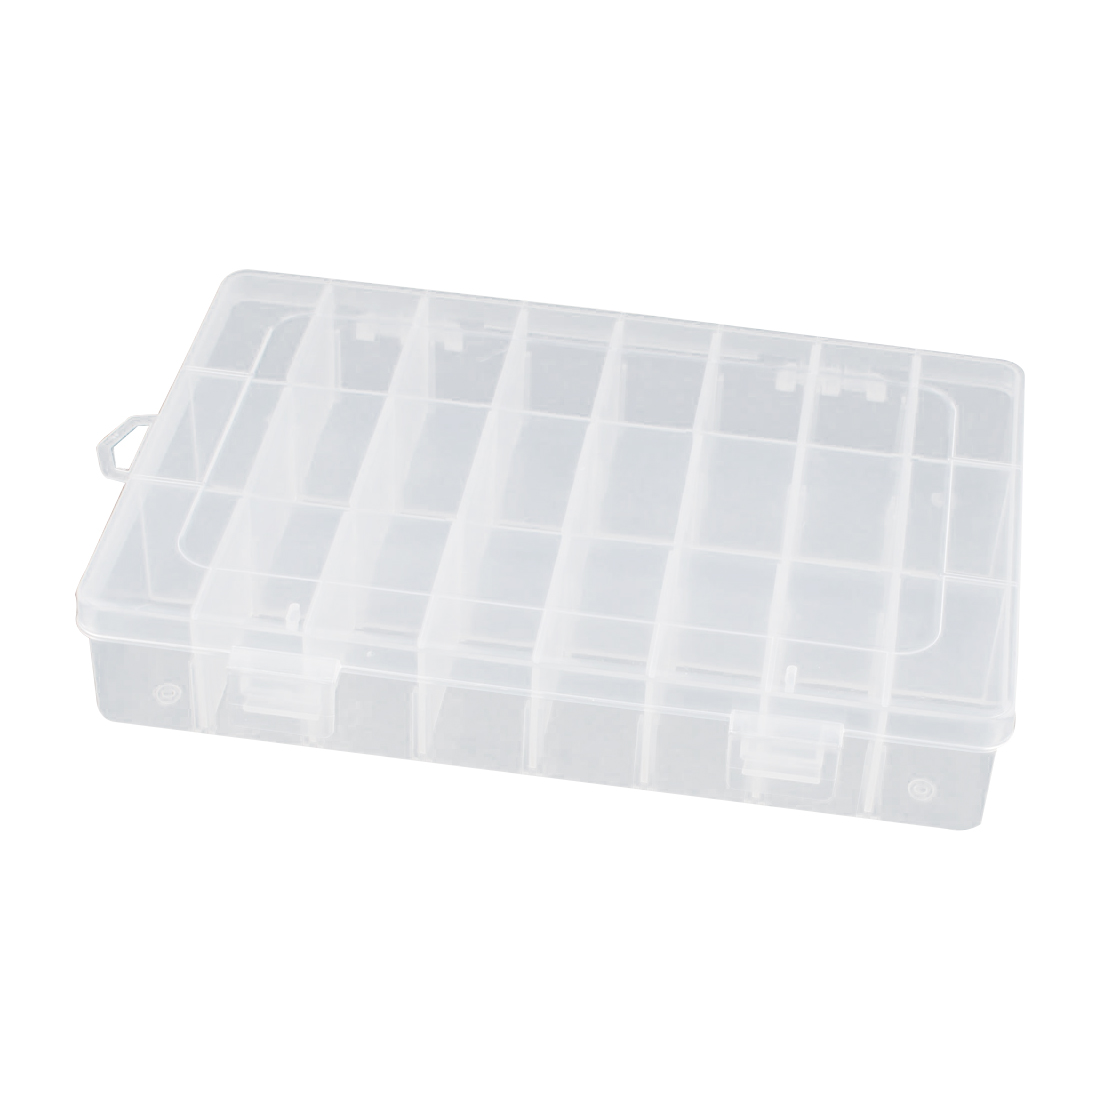 195mmx130mm Rectangle Plastic Detachable 3 Layers 6 Slots Electronic Components Tool Storage Case Box Holder